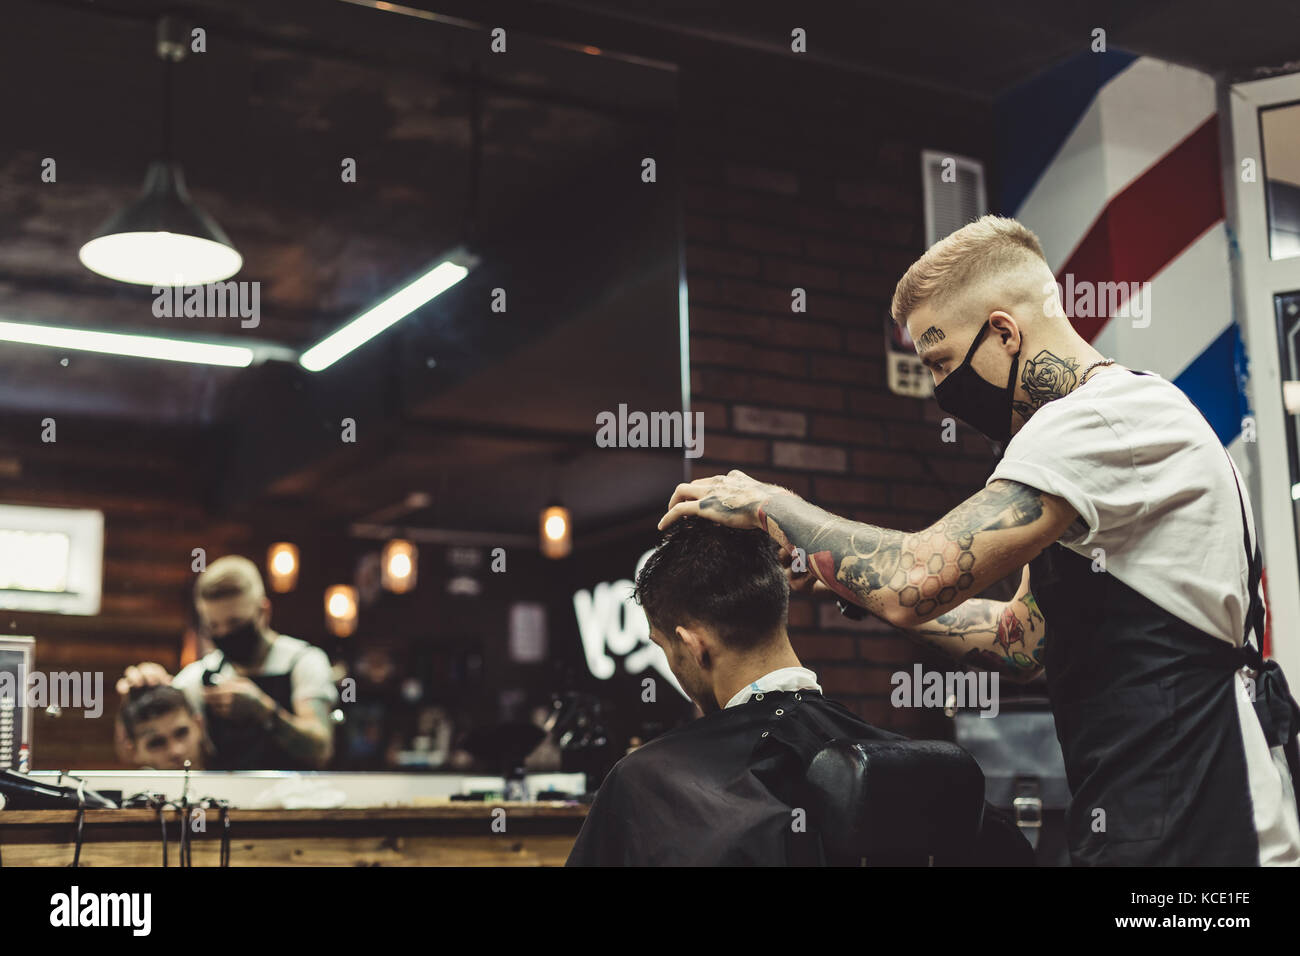 Barber shaving man in chair - Stock Image